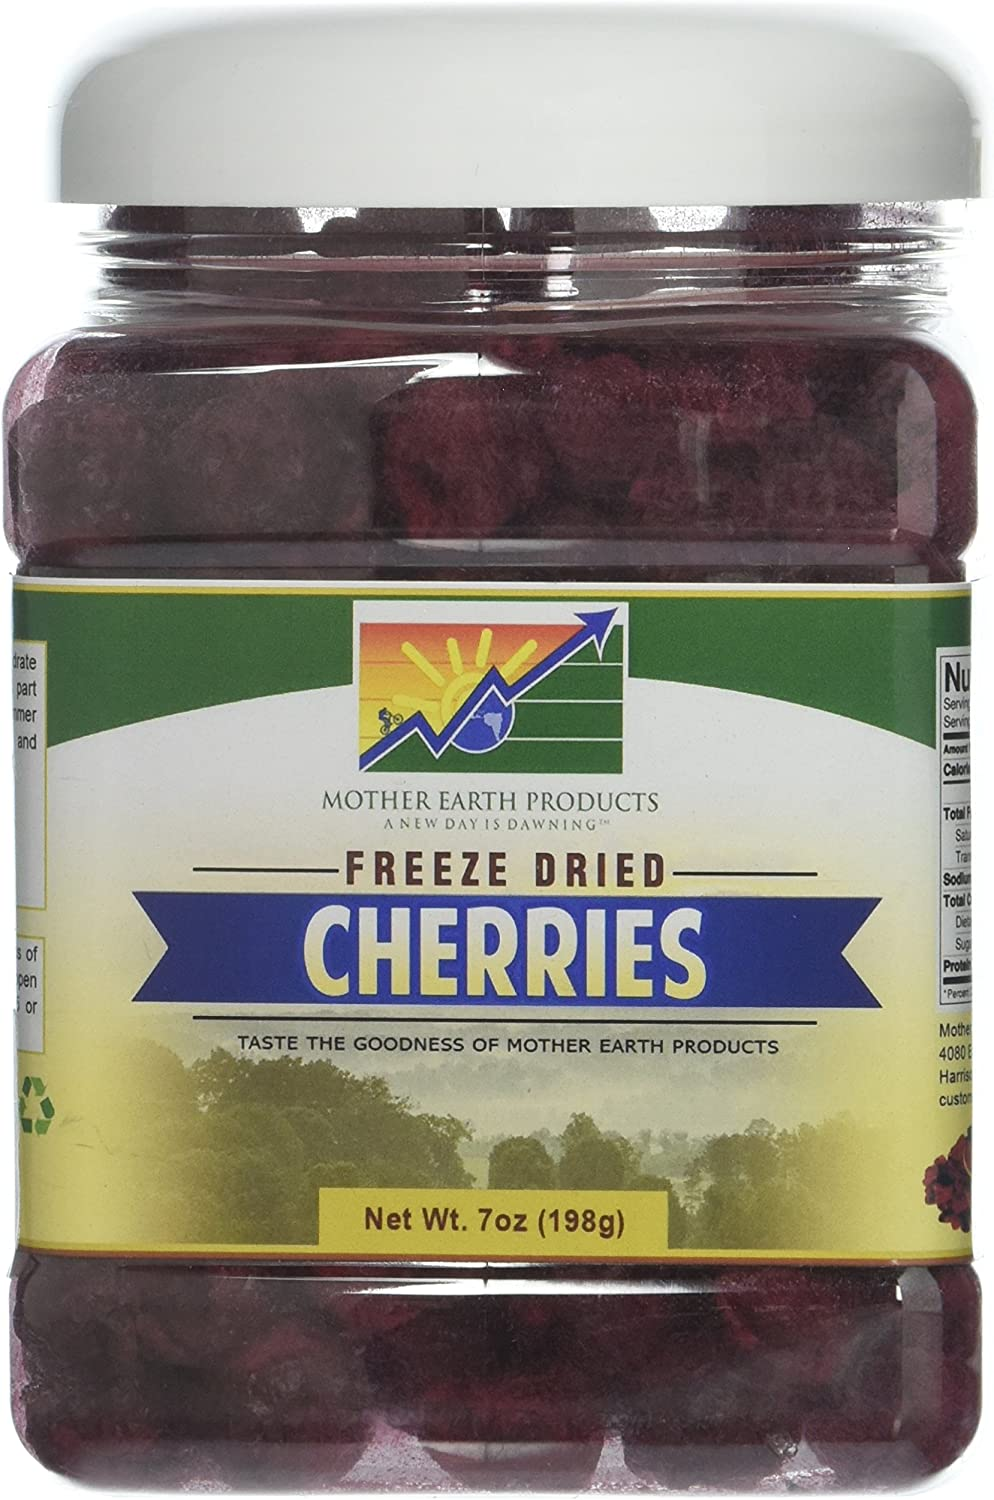 Mother Earth Products Freeze Dried Cherries, 7oz Jar